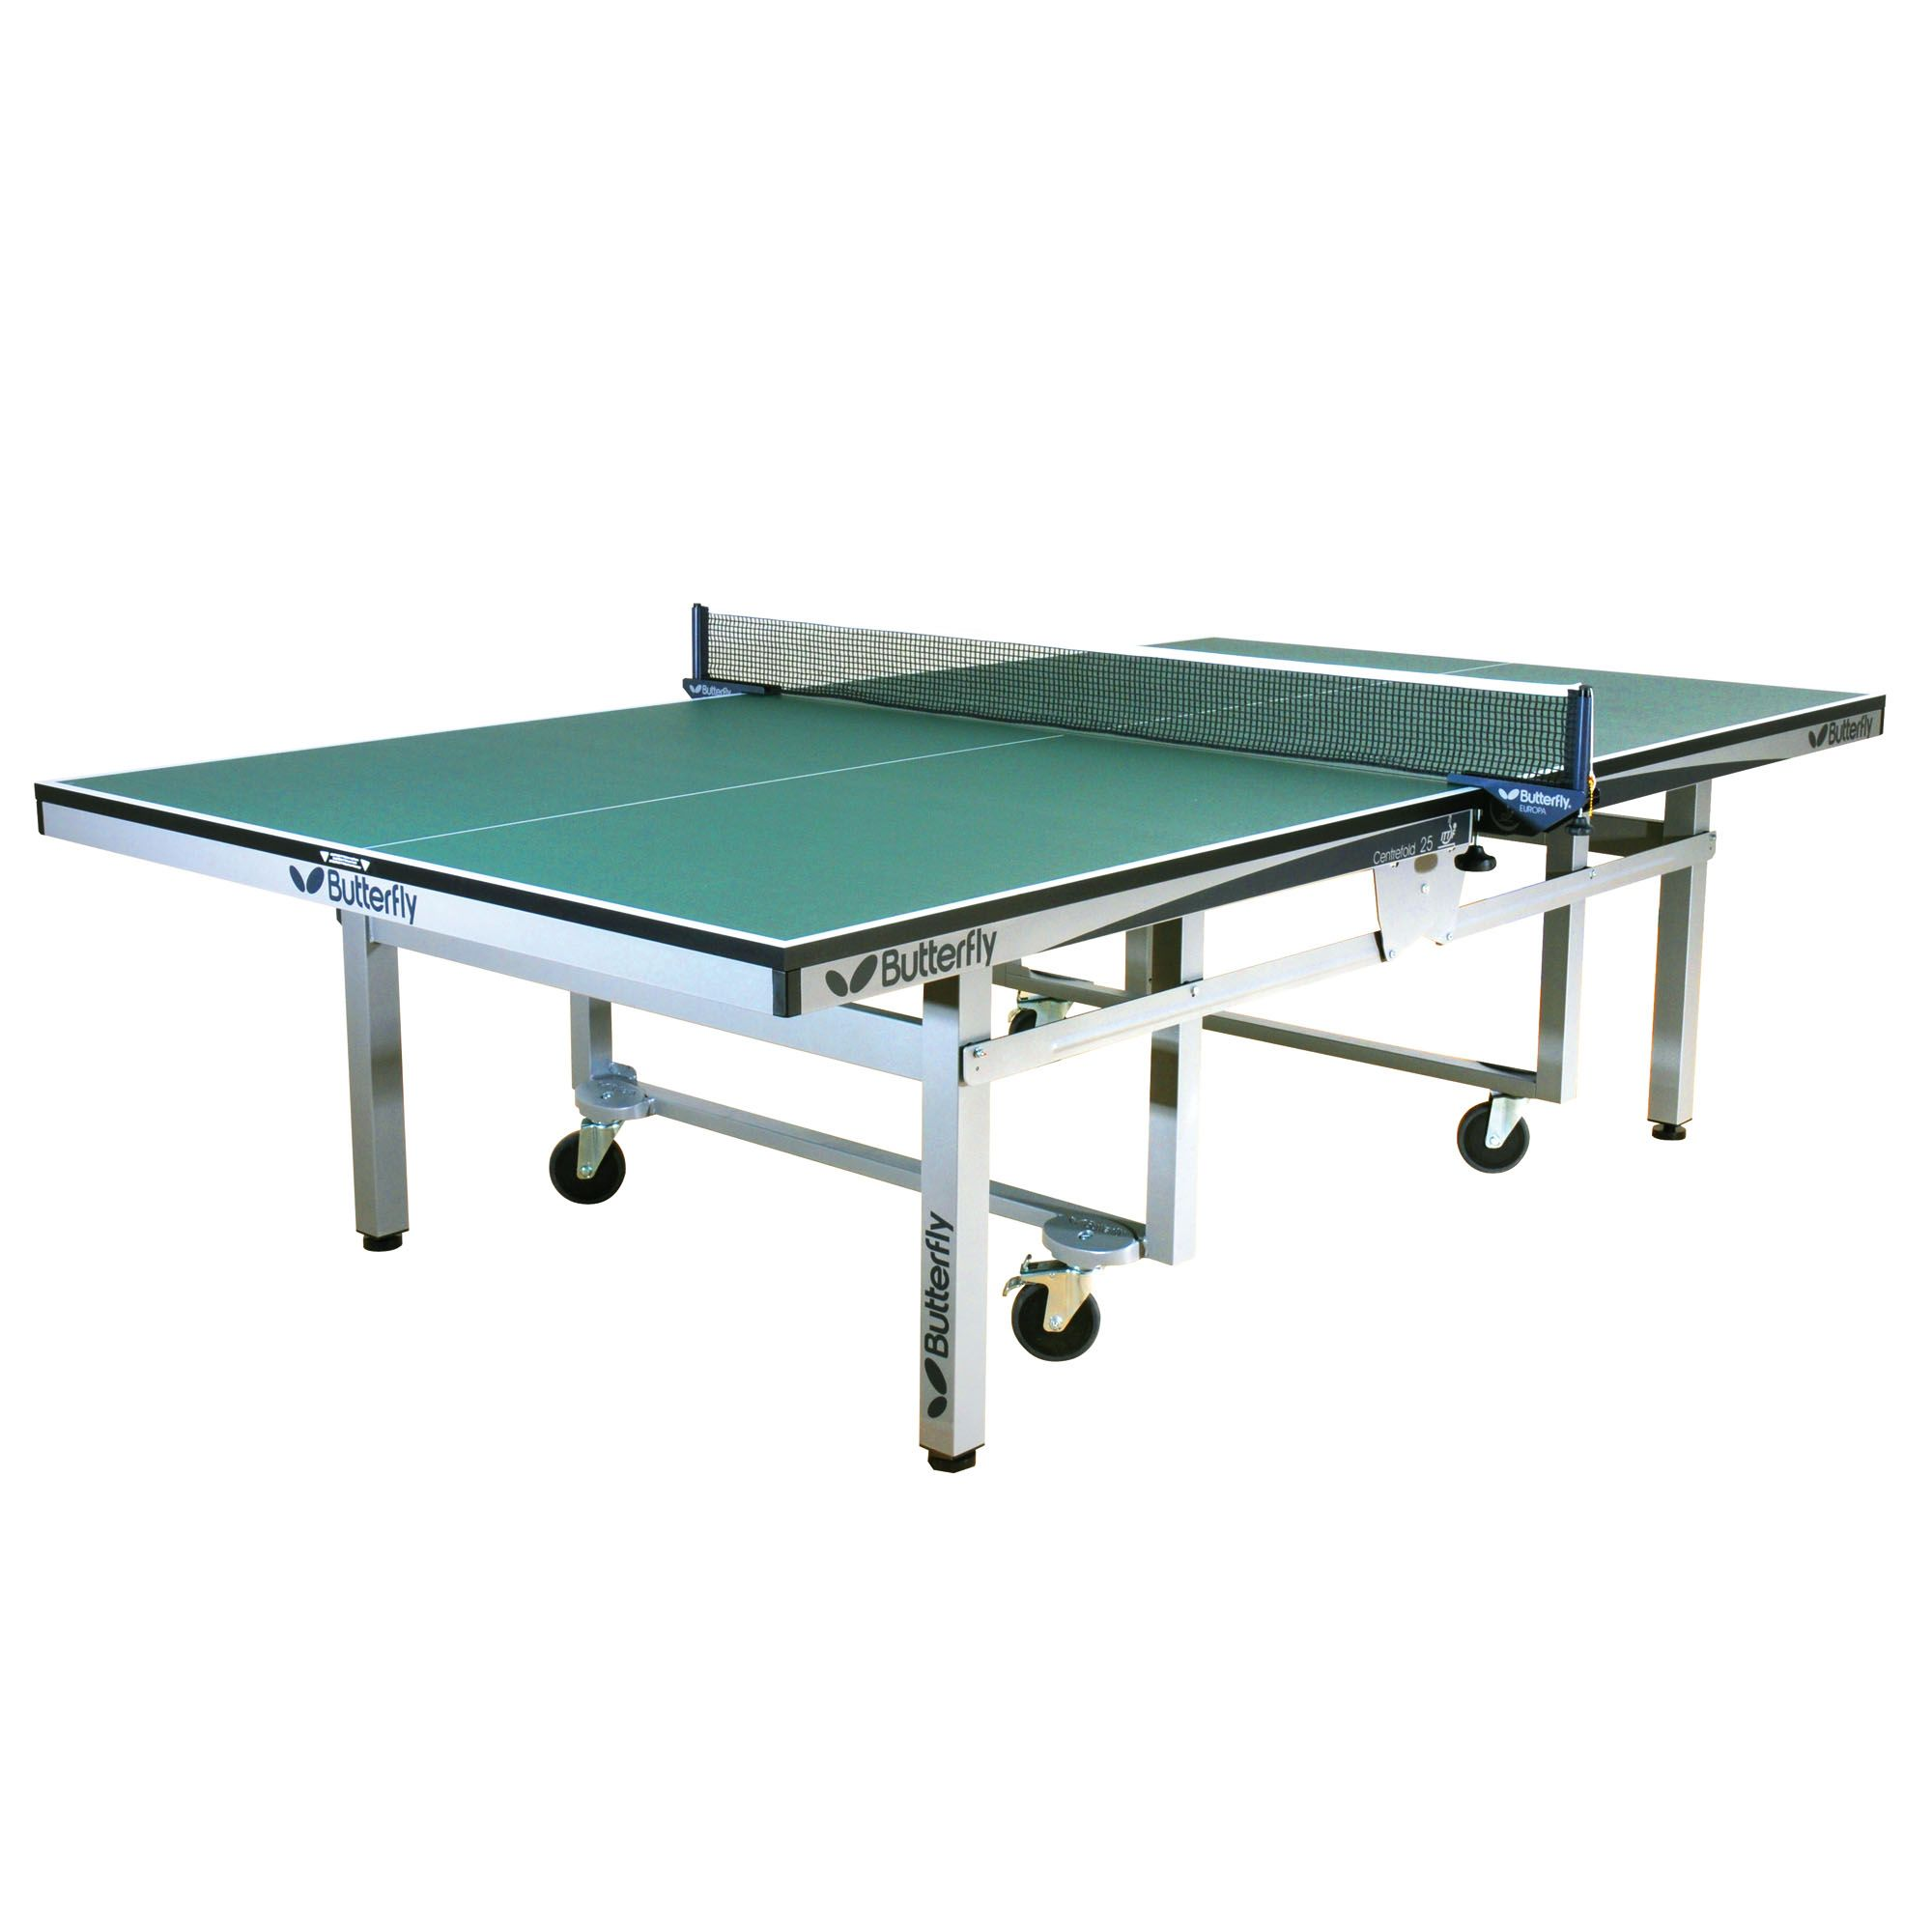 Butterfly centrefold rollaway indoor table tennis table - Used outdoor table tennis tables for sale ...